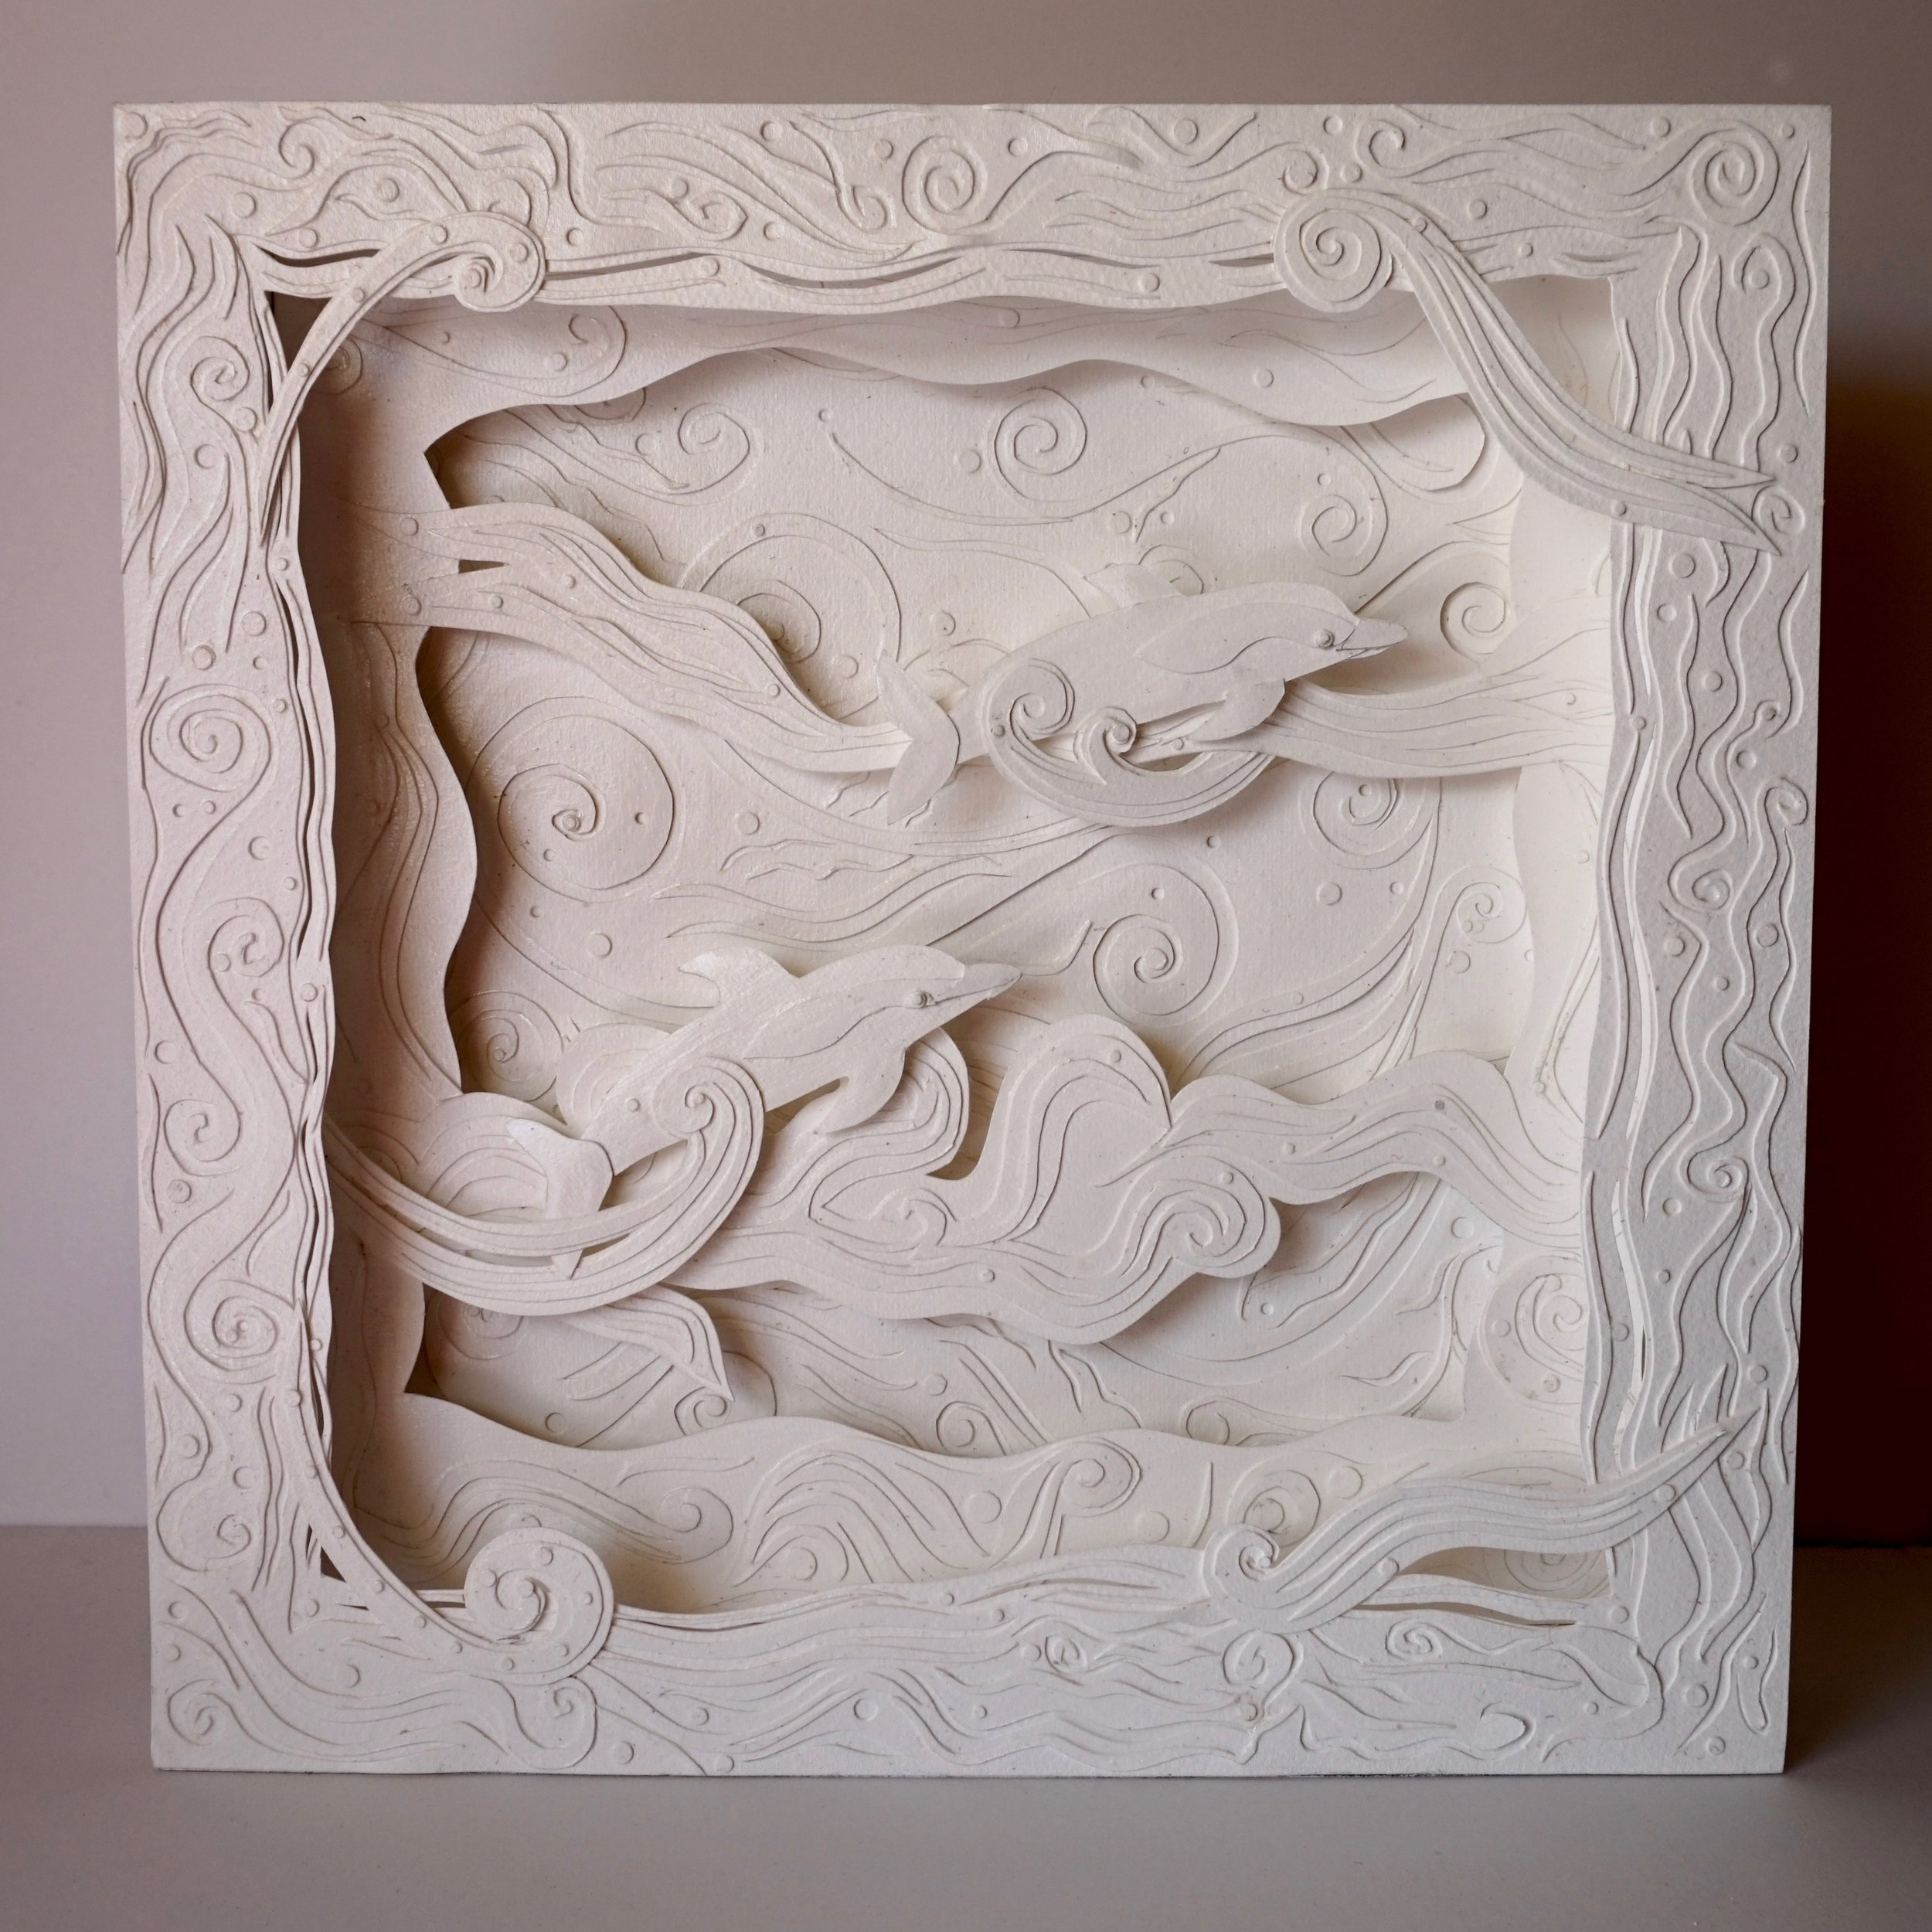 "Ride the Wave paper sculpture in 12"" x 12"" box."